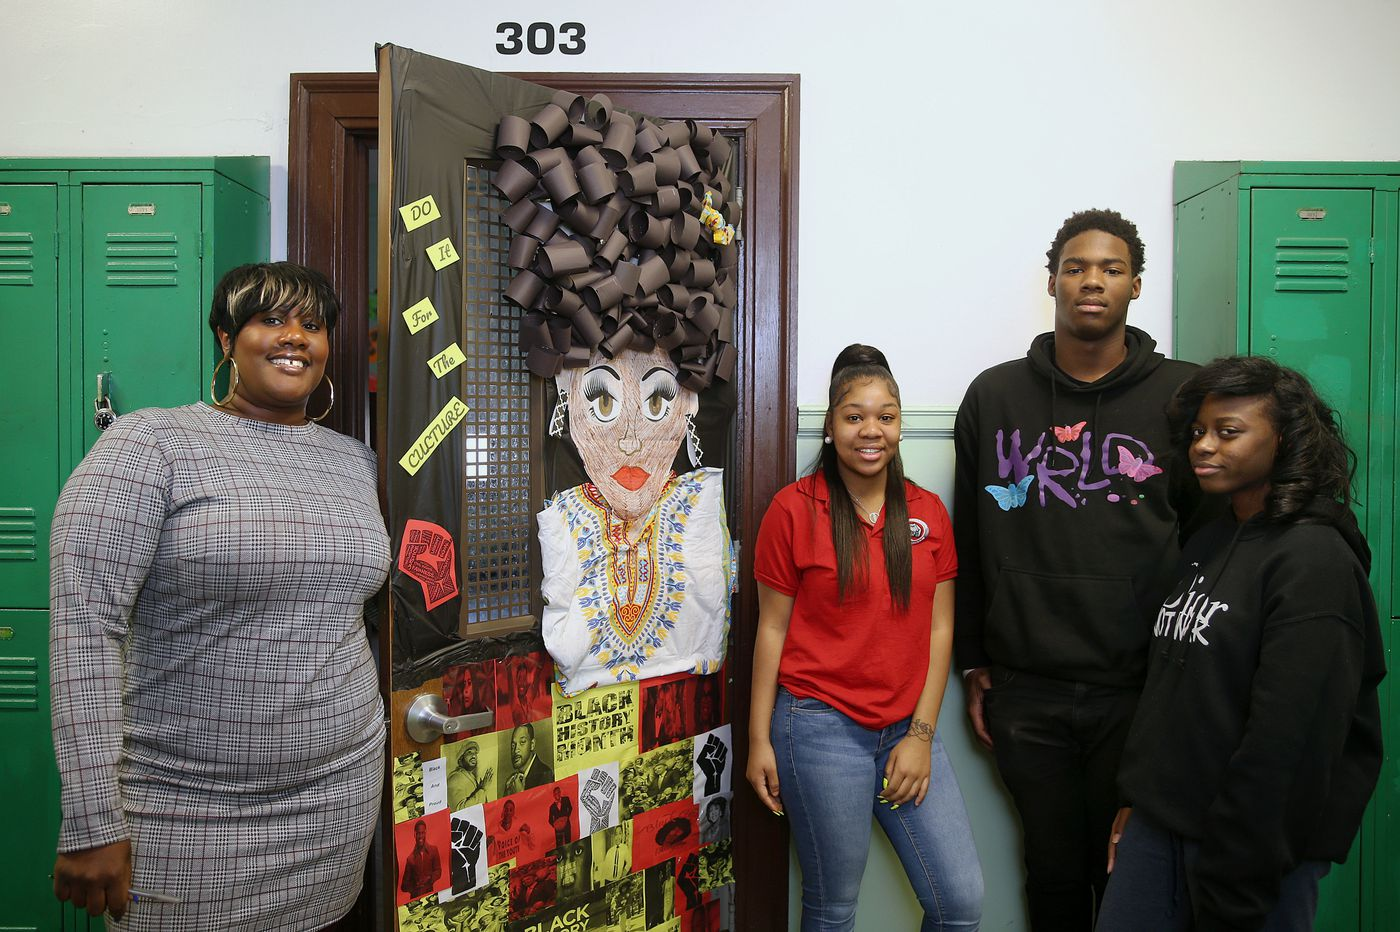 In what's so far been a dumpster fire of a Black History Month, Philadelphia classroom doors are a much needed bright spot | Helen Ubiñas